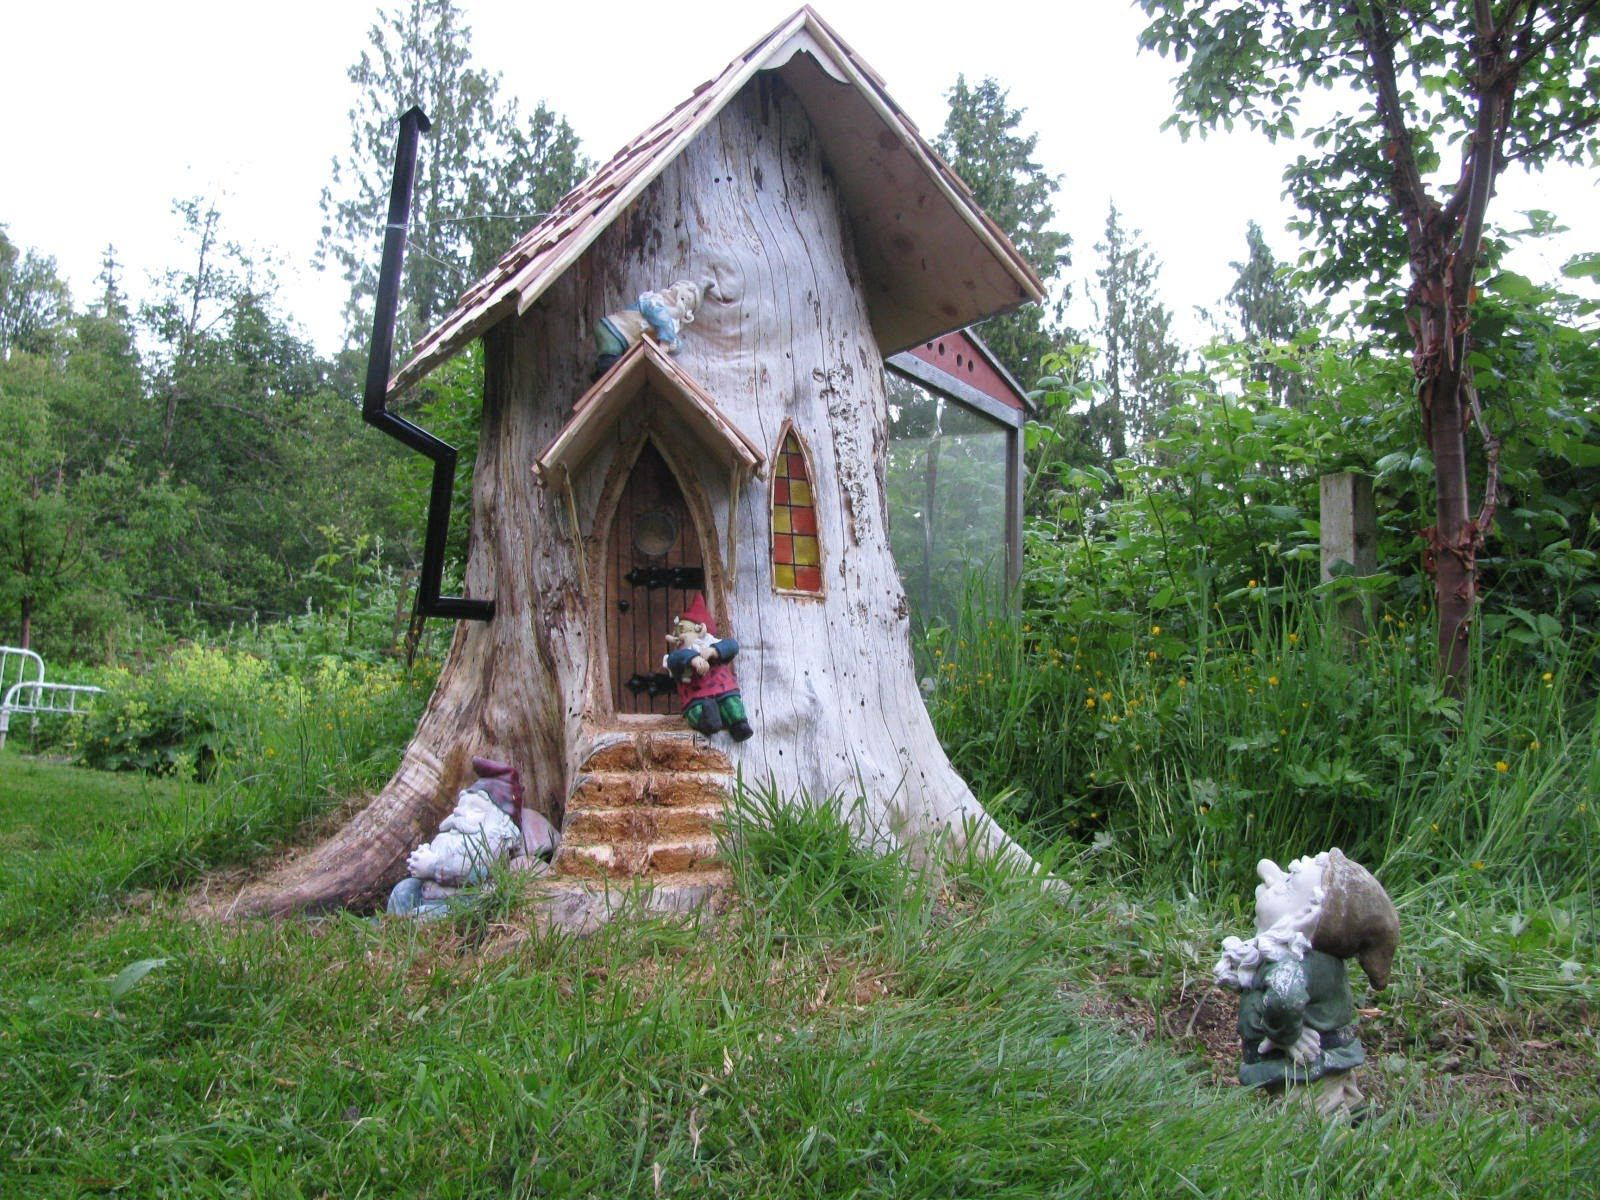 Gnome Garden: We Had Two Big Trees Growing Too Close To Our Home, So We